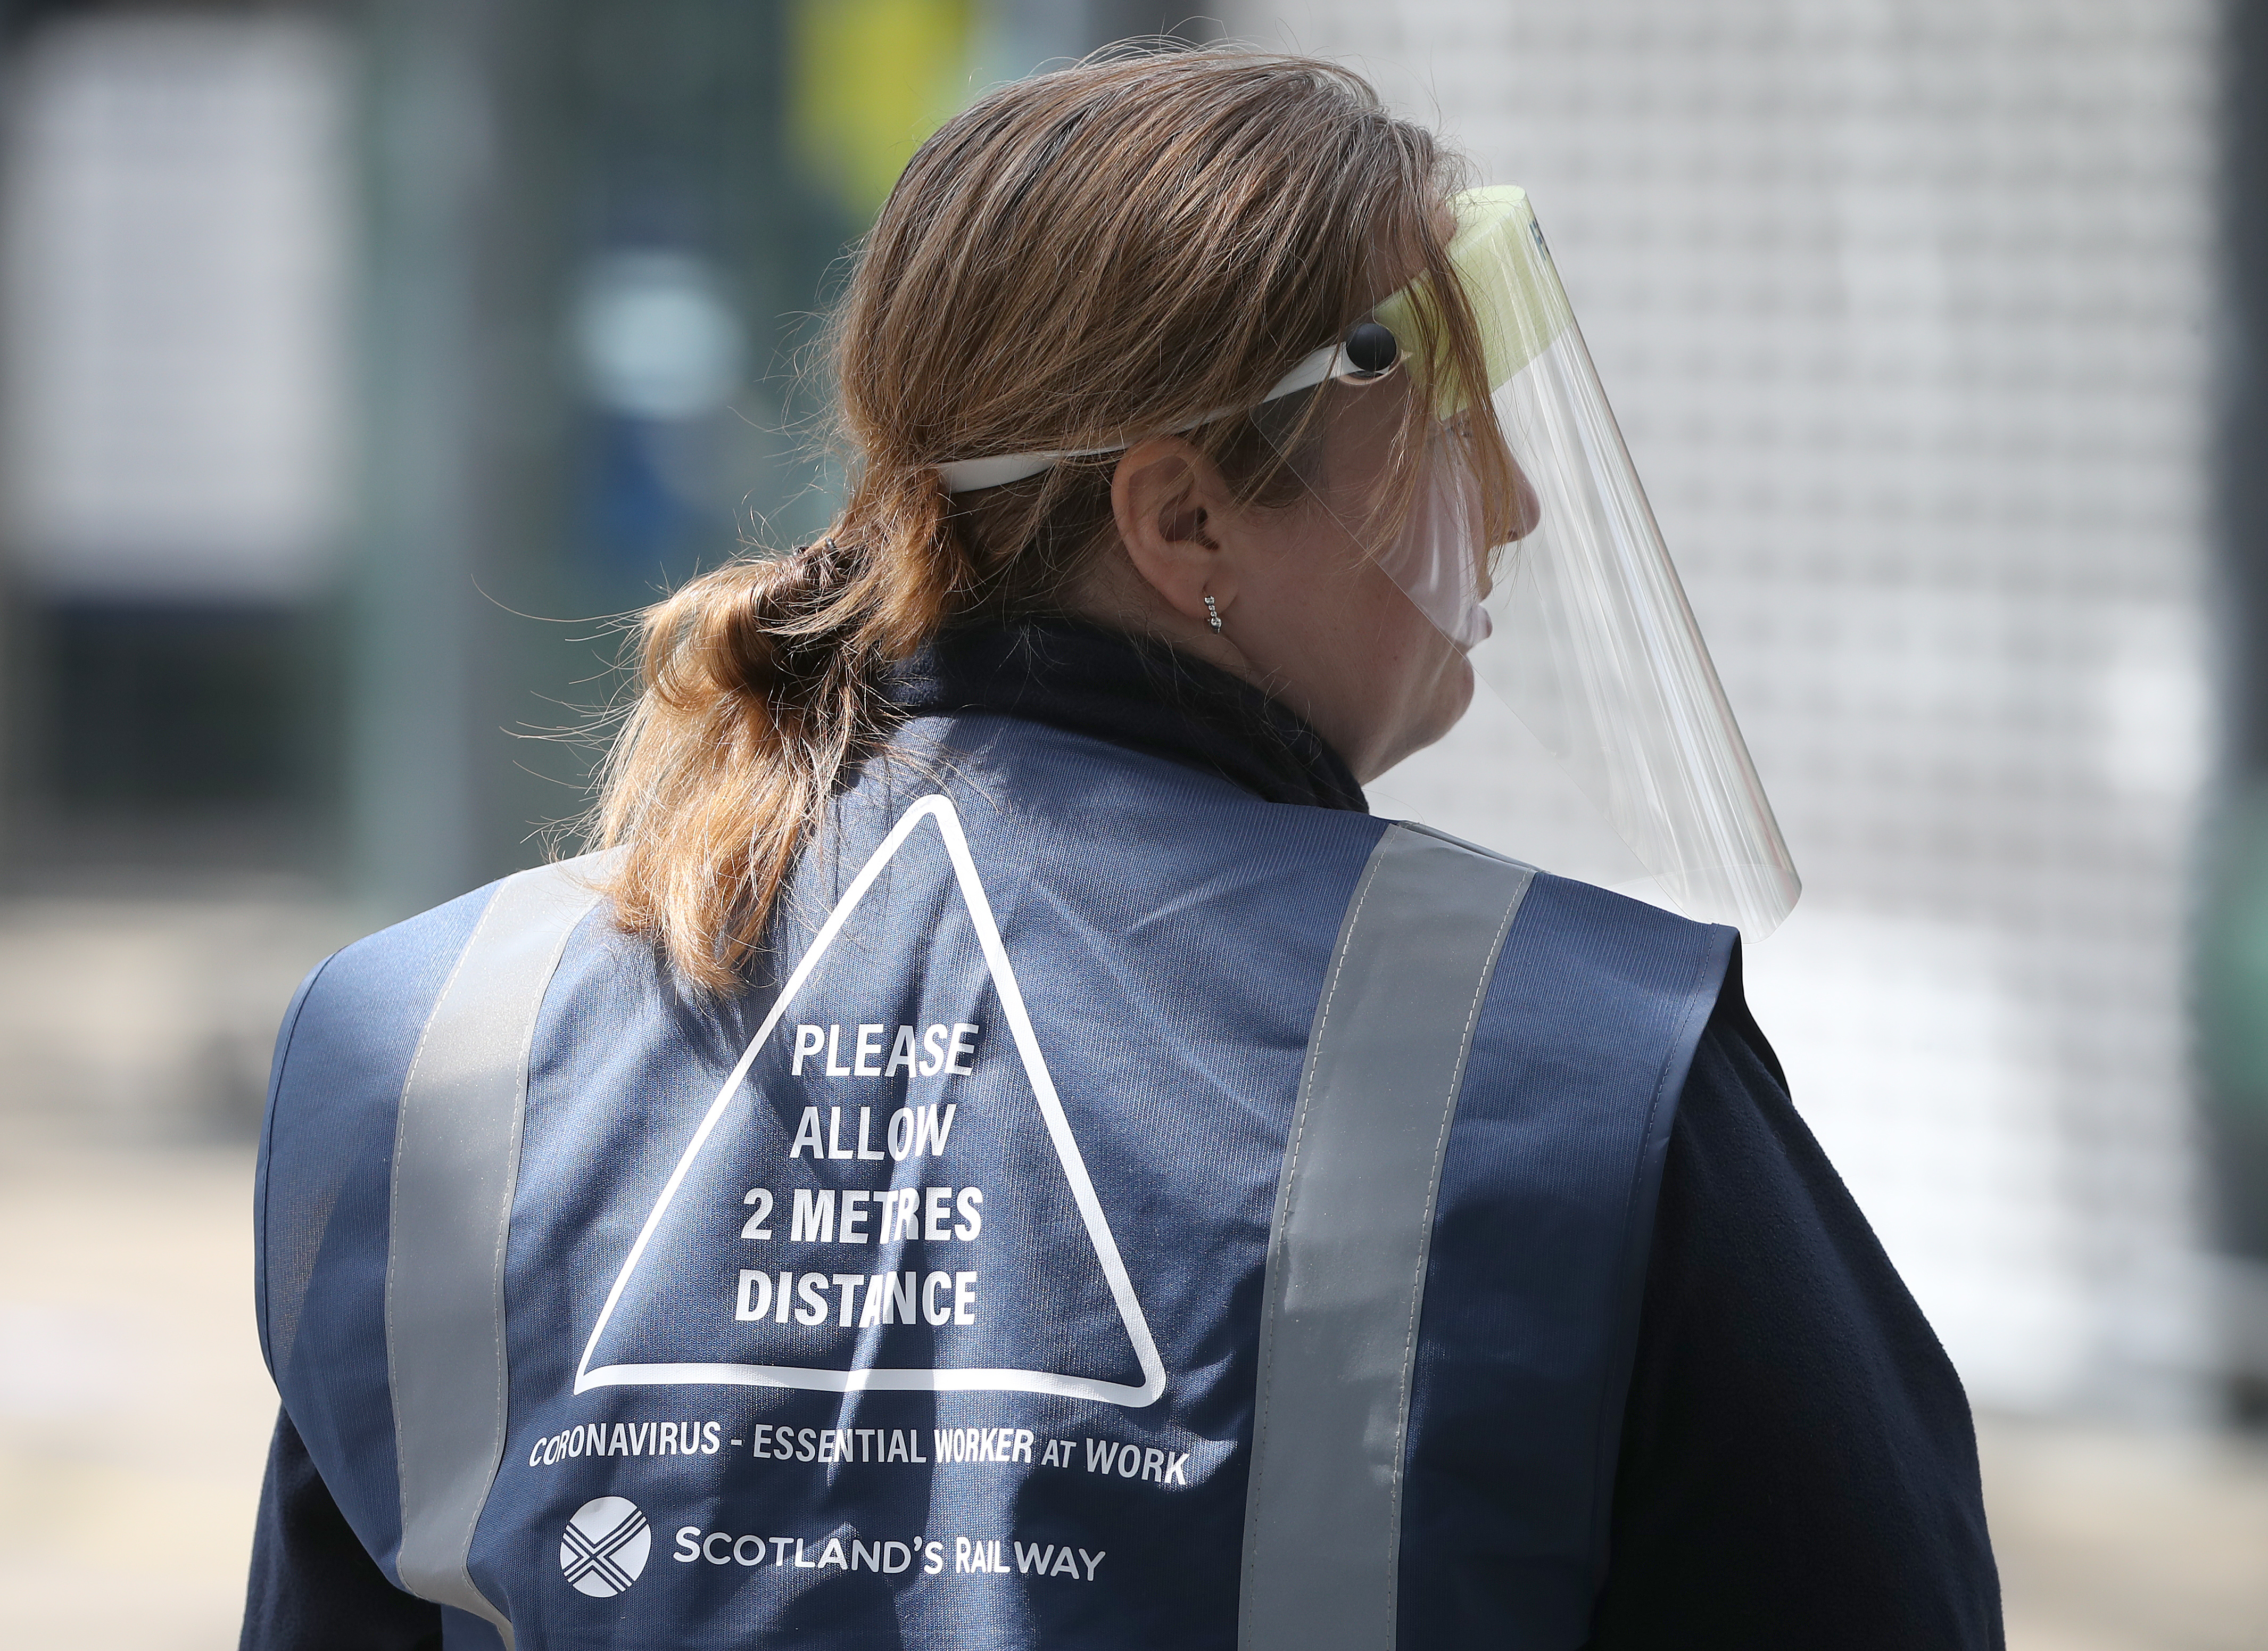 A person wears a jacket with Social distance guidelines printed on it at Edinburgh Waverley Station as Scotland moves into phase one of the Scottish Government's plan for gradually lifting lockdown. (Photo by Andrew Milligan/PA Images via Getty Images)